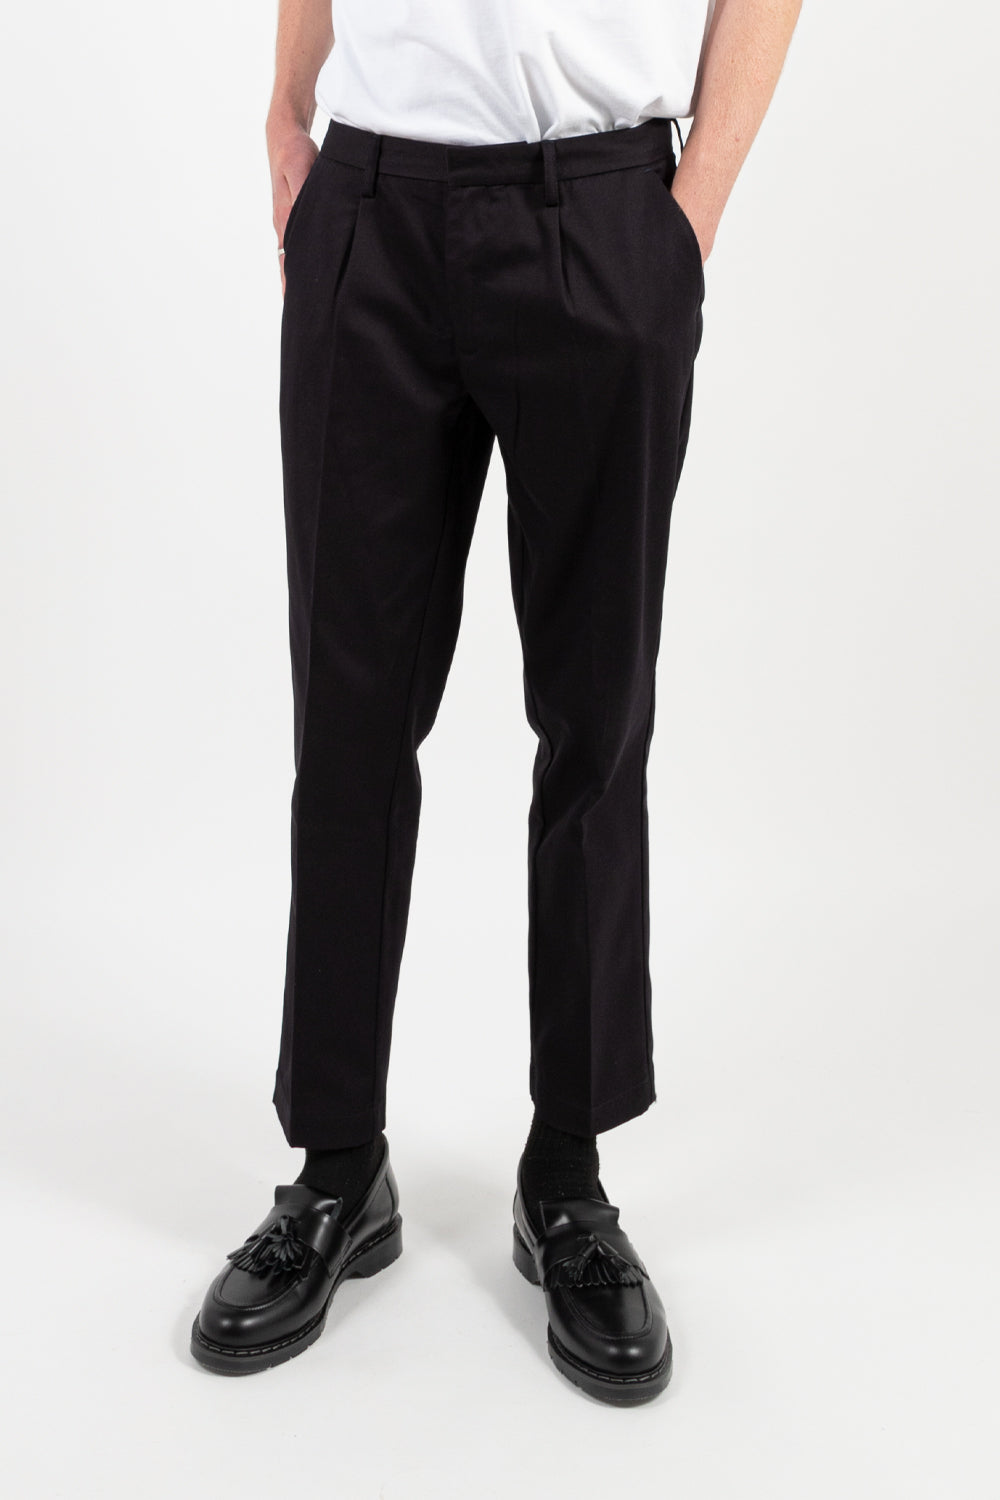 reception club pant in dark navy